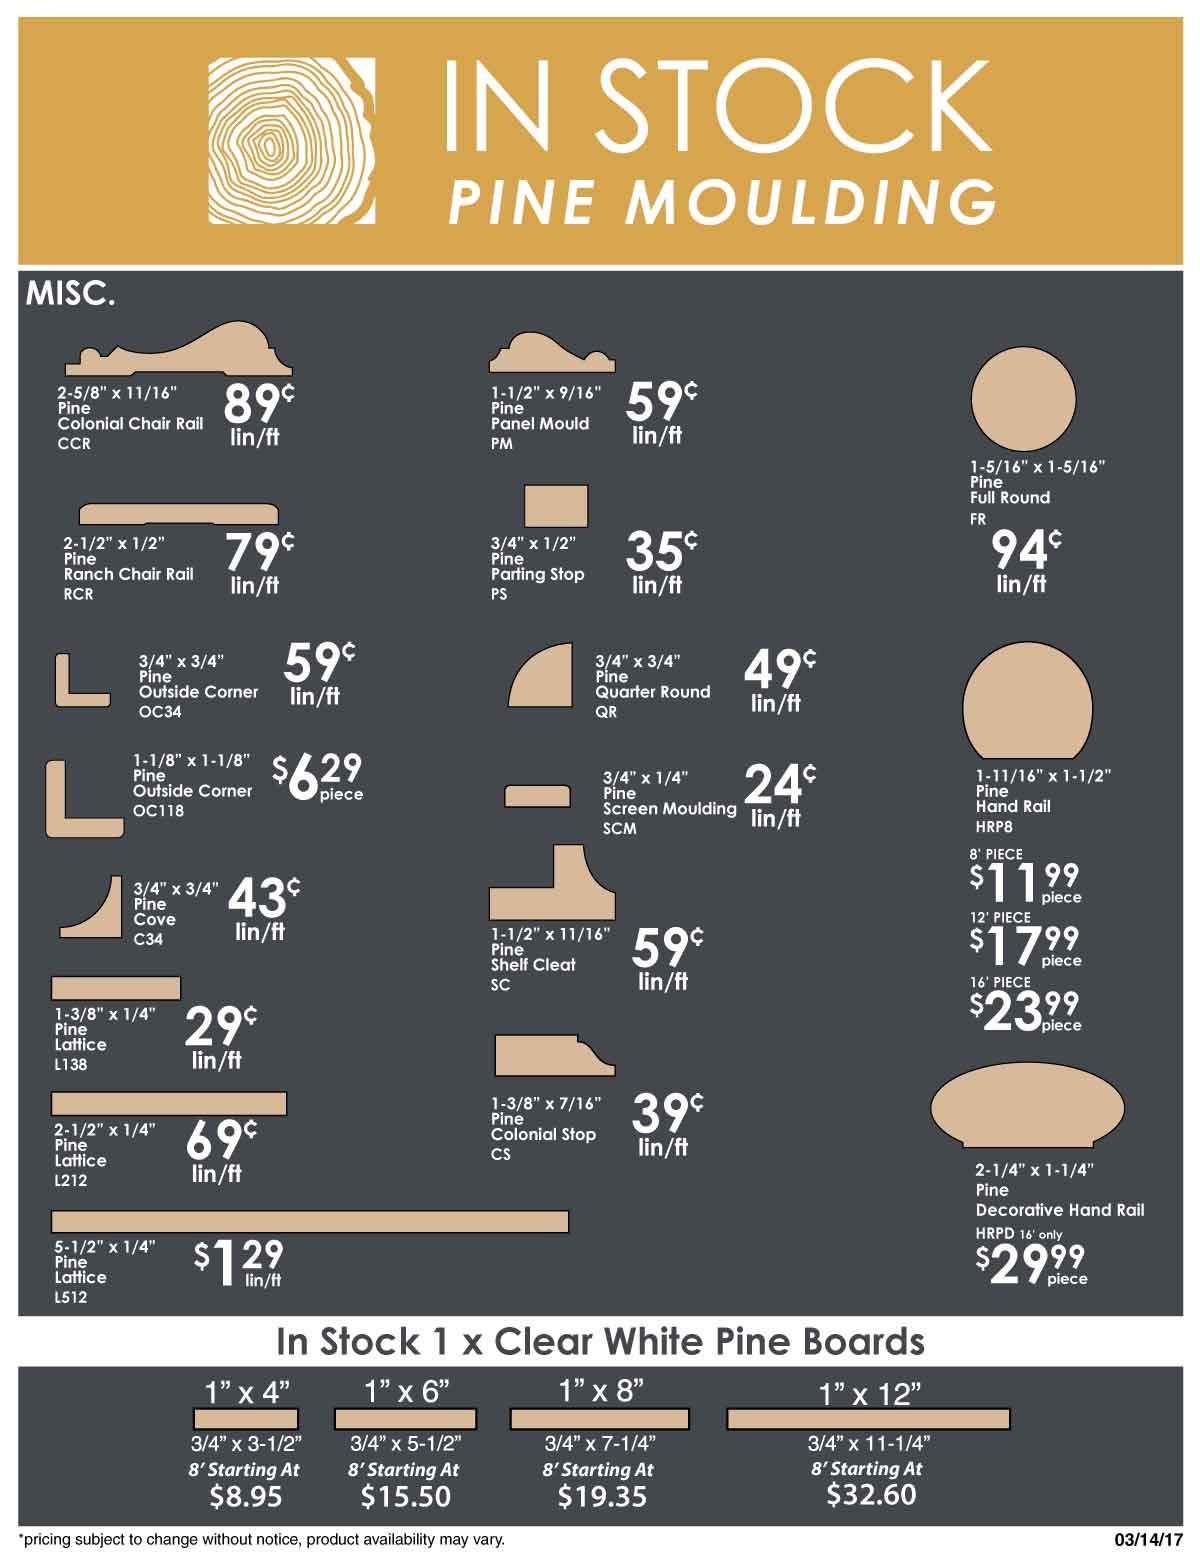 in stock pine moulding